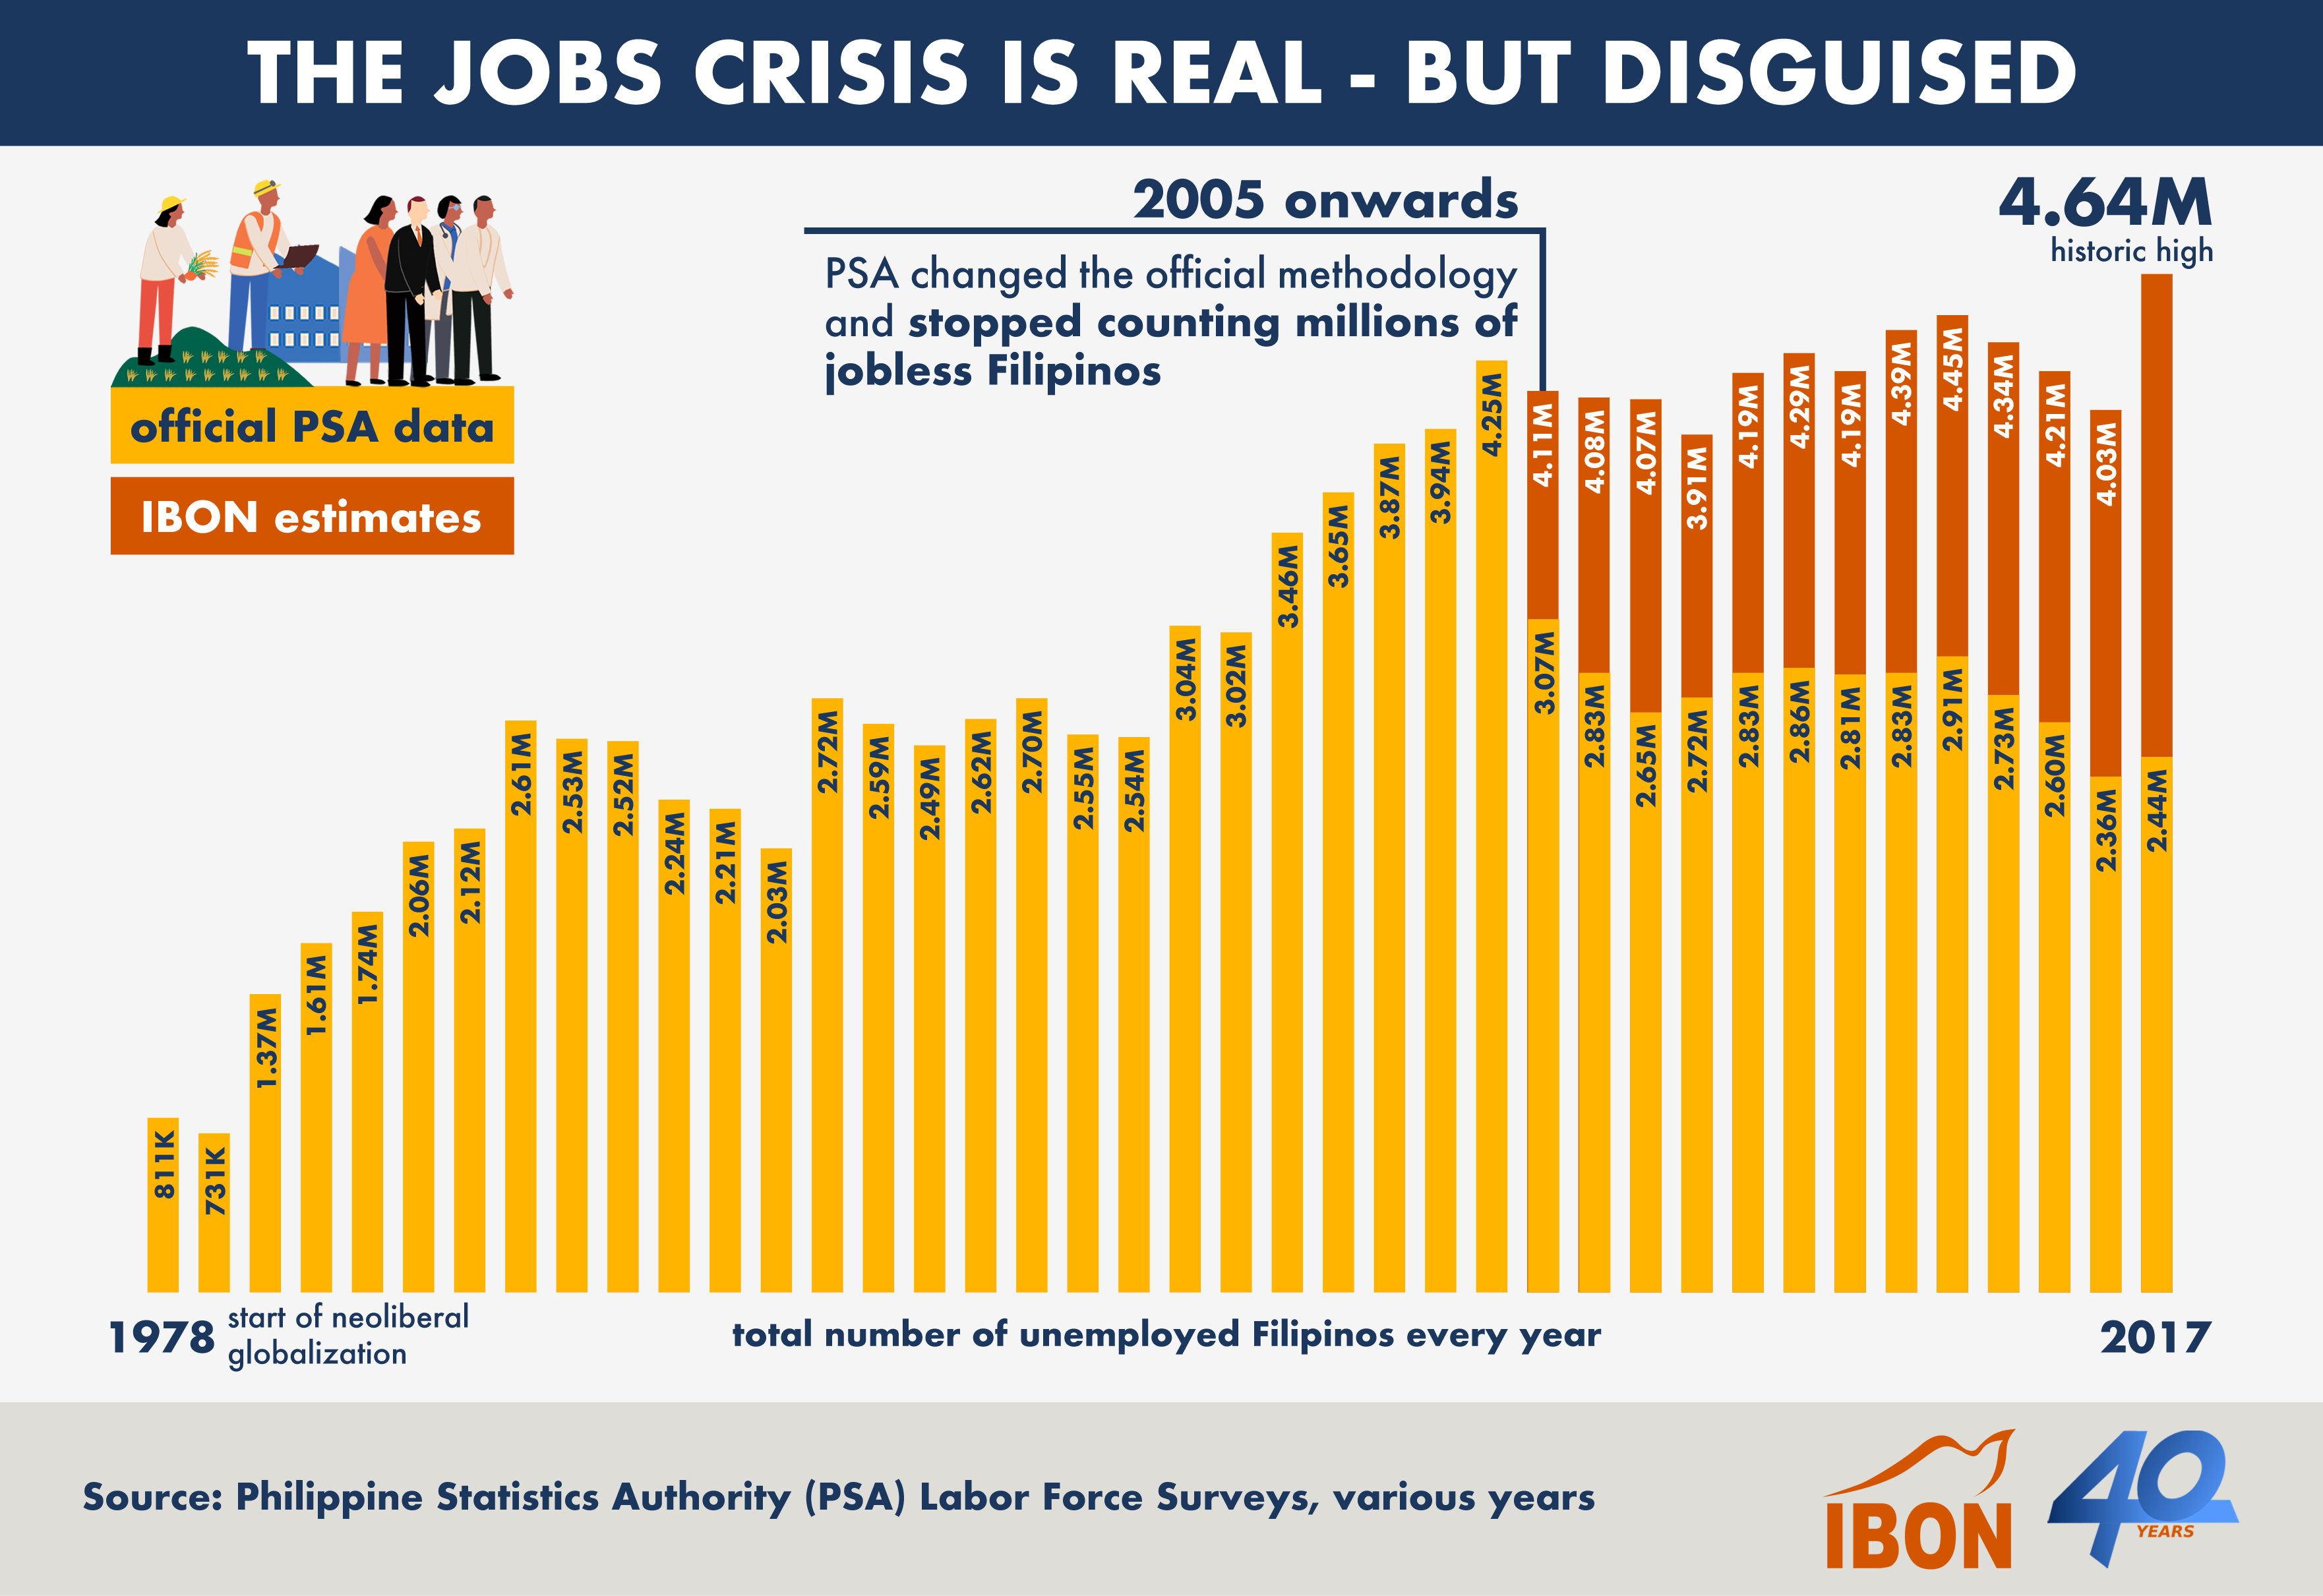 Job Crisis is Real - But Disguised [unemployed, blue, capital M and K]